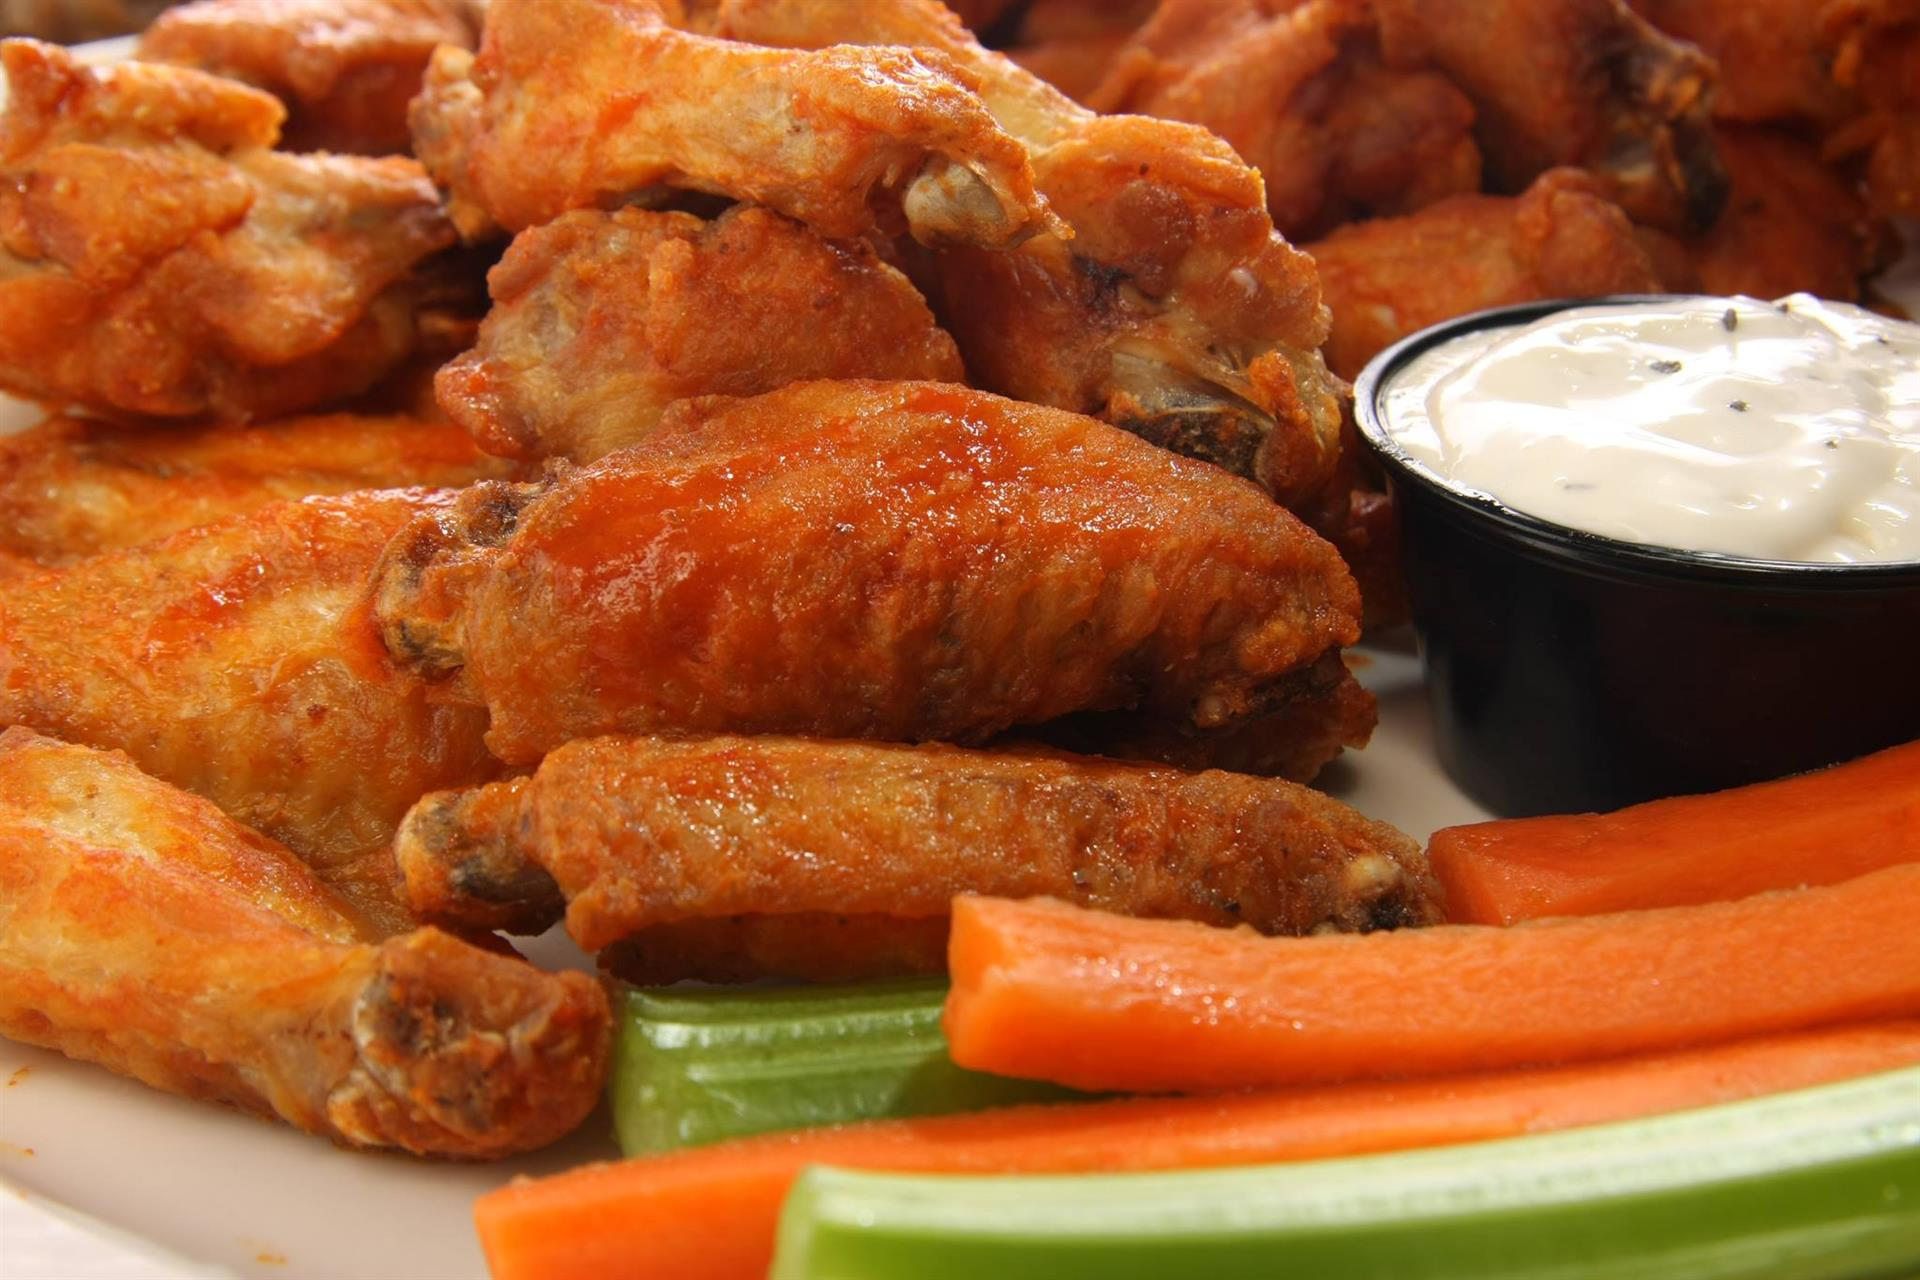 Assortment of buffalo wings with celery and carrots with dipping sauce